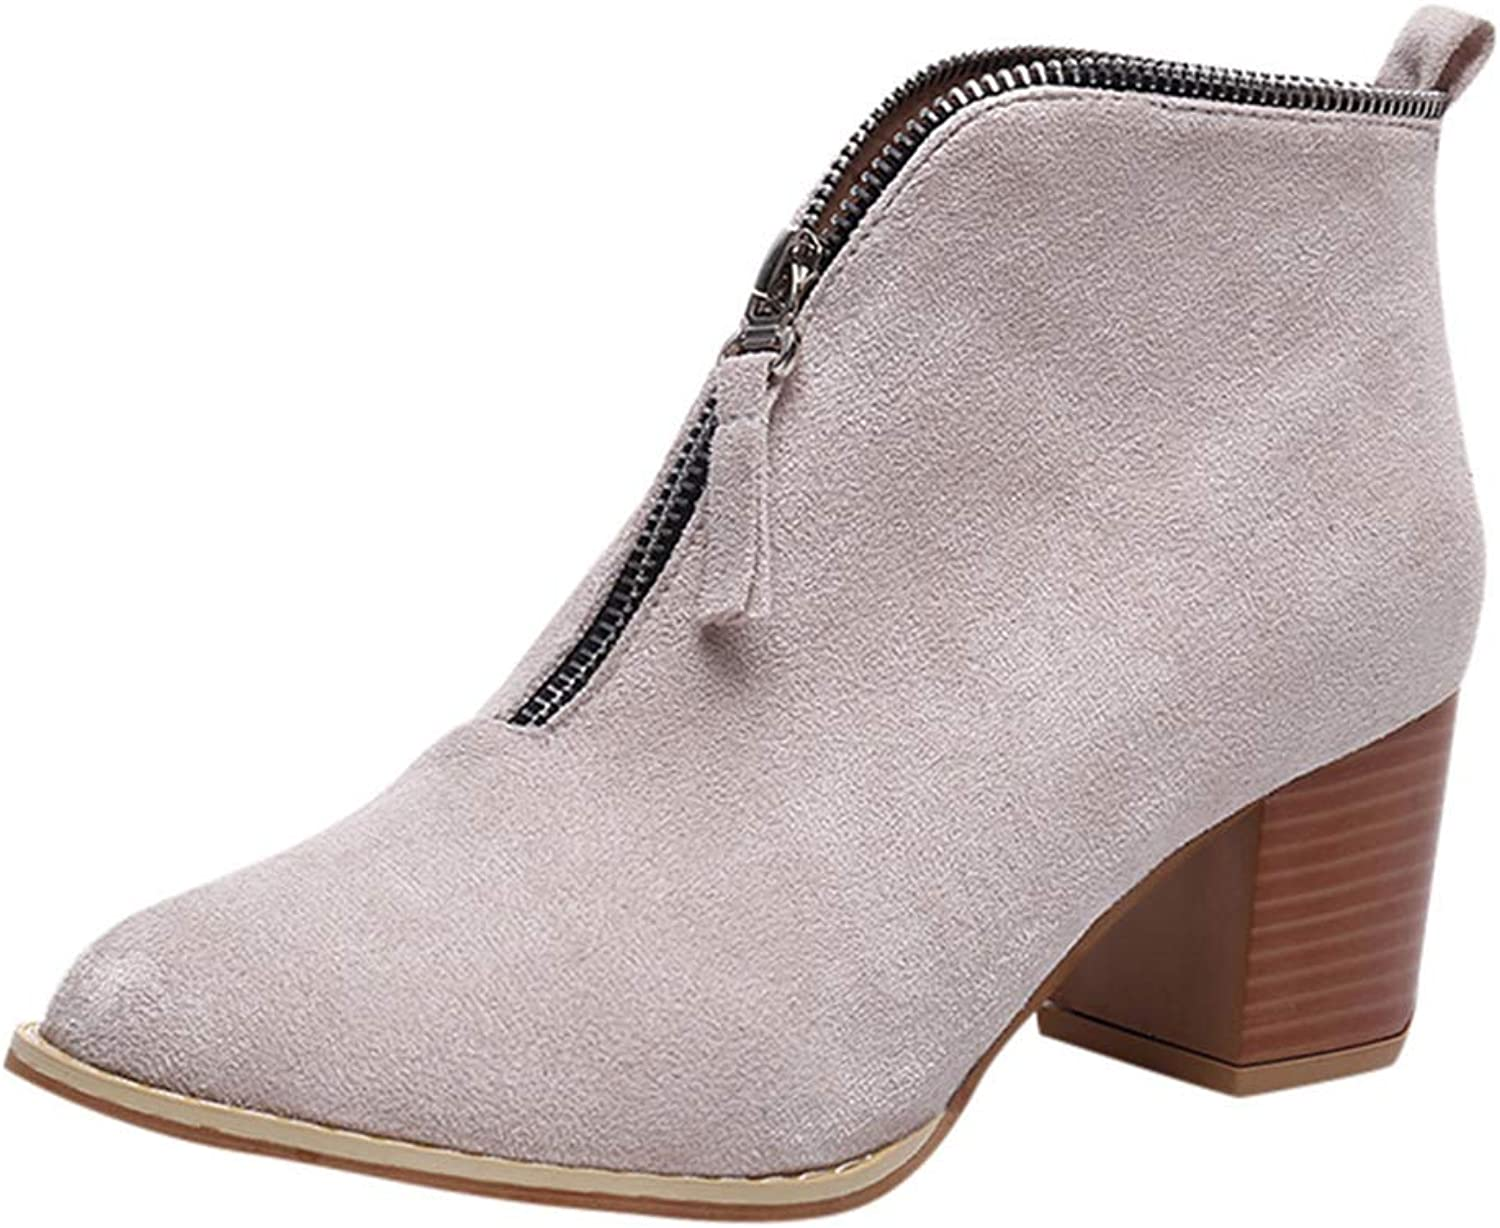 Zarbrina Womens Low Chunky Heel Platform Ankle Boots Fashion Sexy Pointed Toe Rubber Sole Zipper Up Slip On Winter Warm Dressy shoes